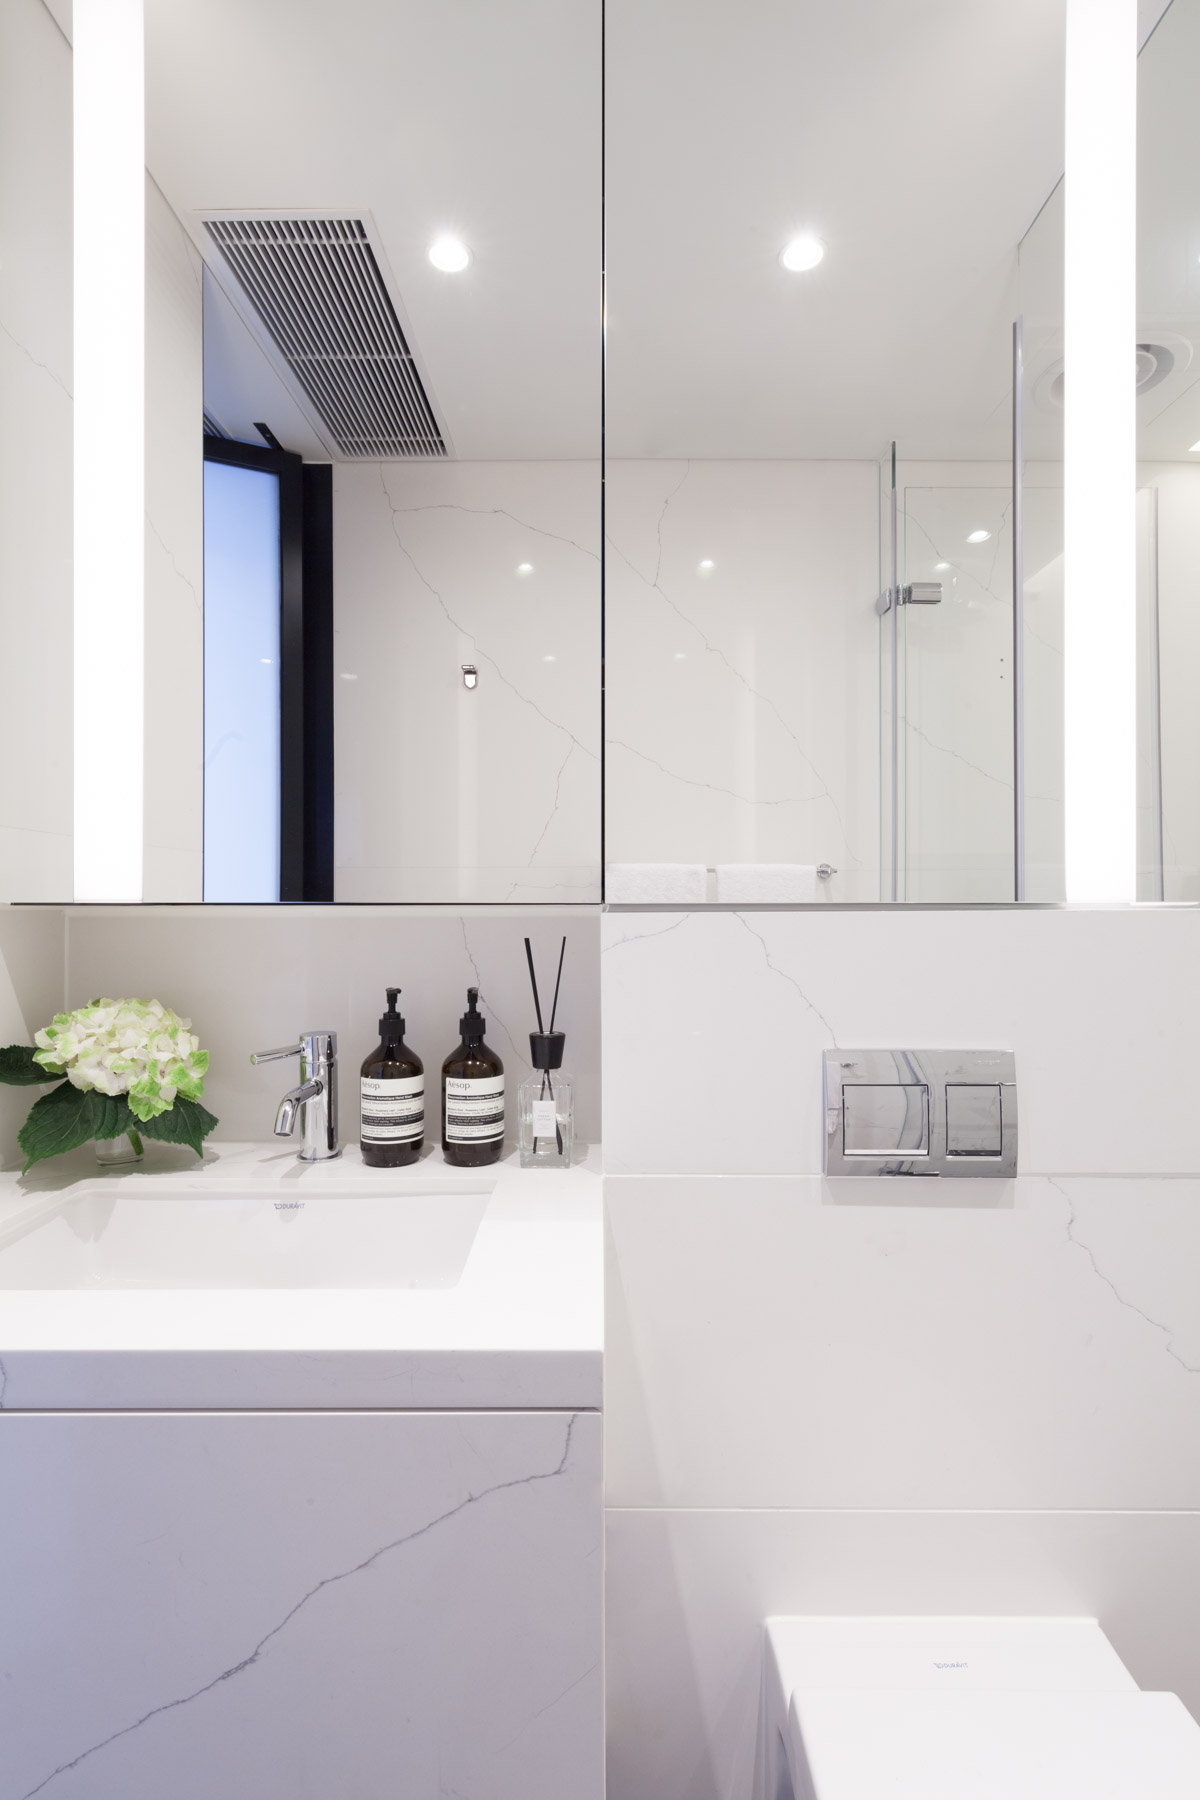 Luna_JM11_Studio Flat E Bathroom-0034_WebRes Anahita Chouhan Make Architects.jpg